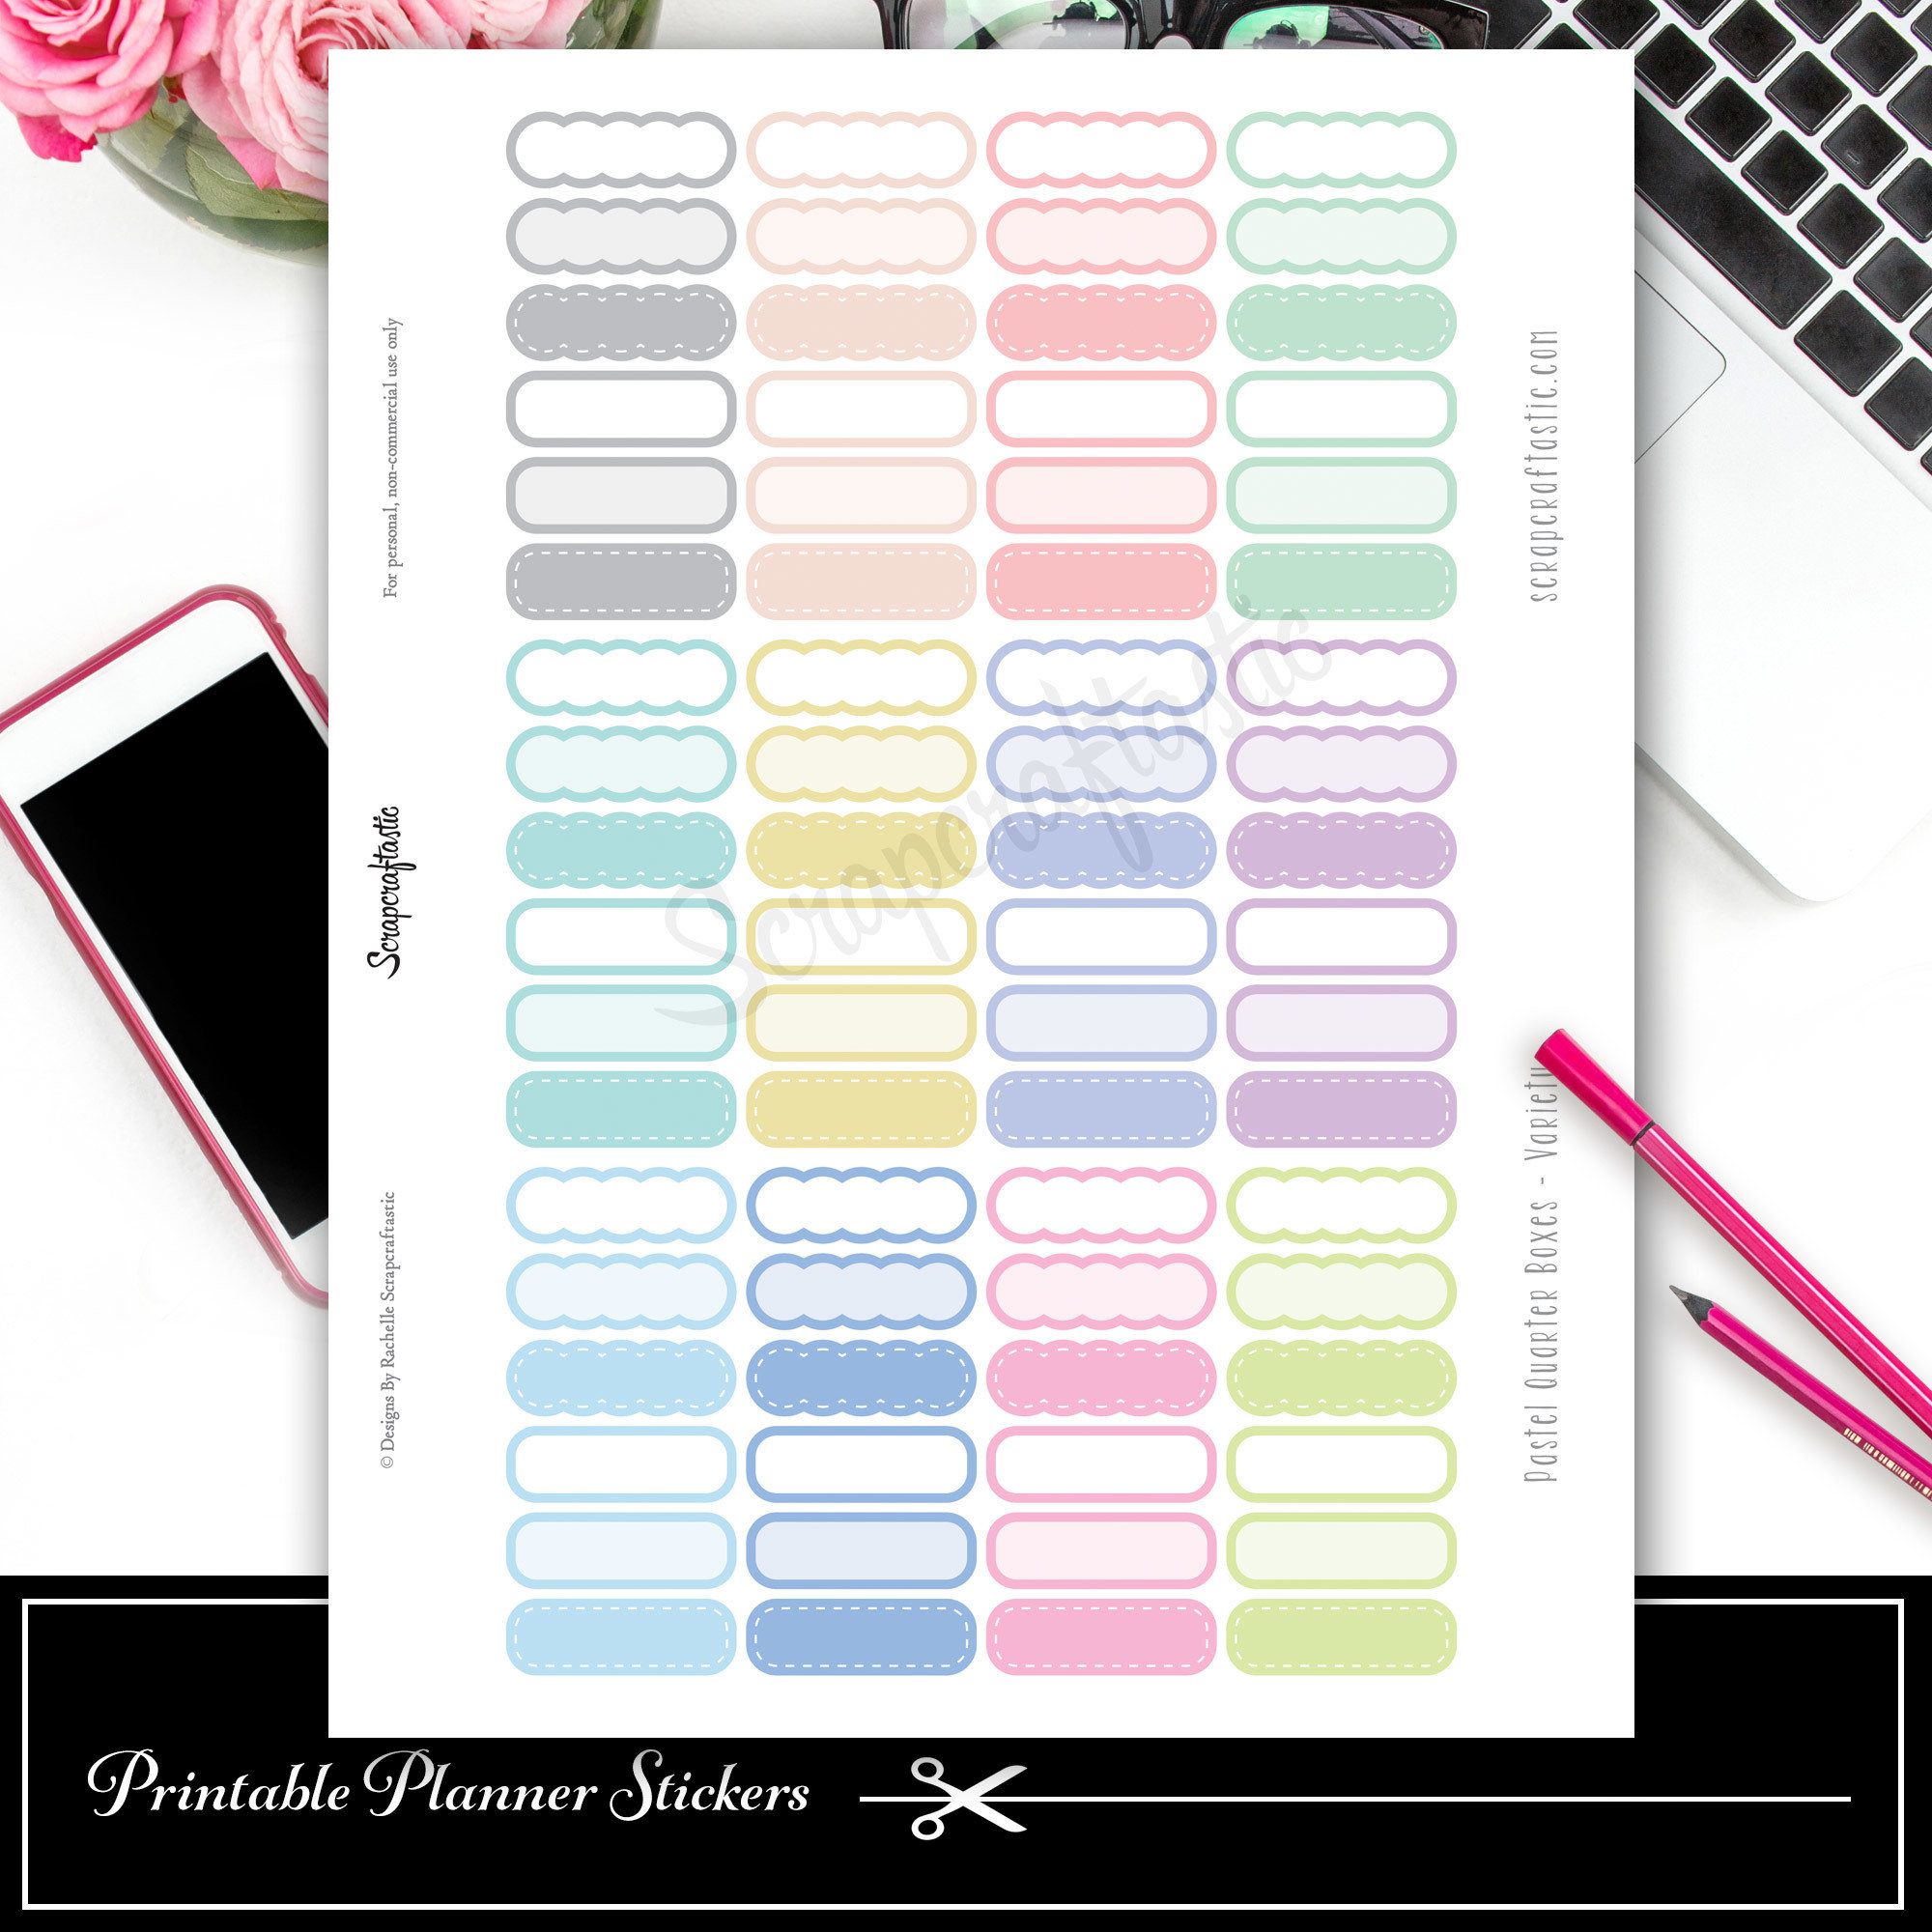 Scallop Pastel Variety Quarter Box Printable Planner Stickers and Silhouette Cut File 03010